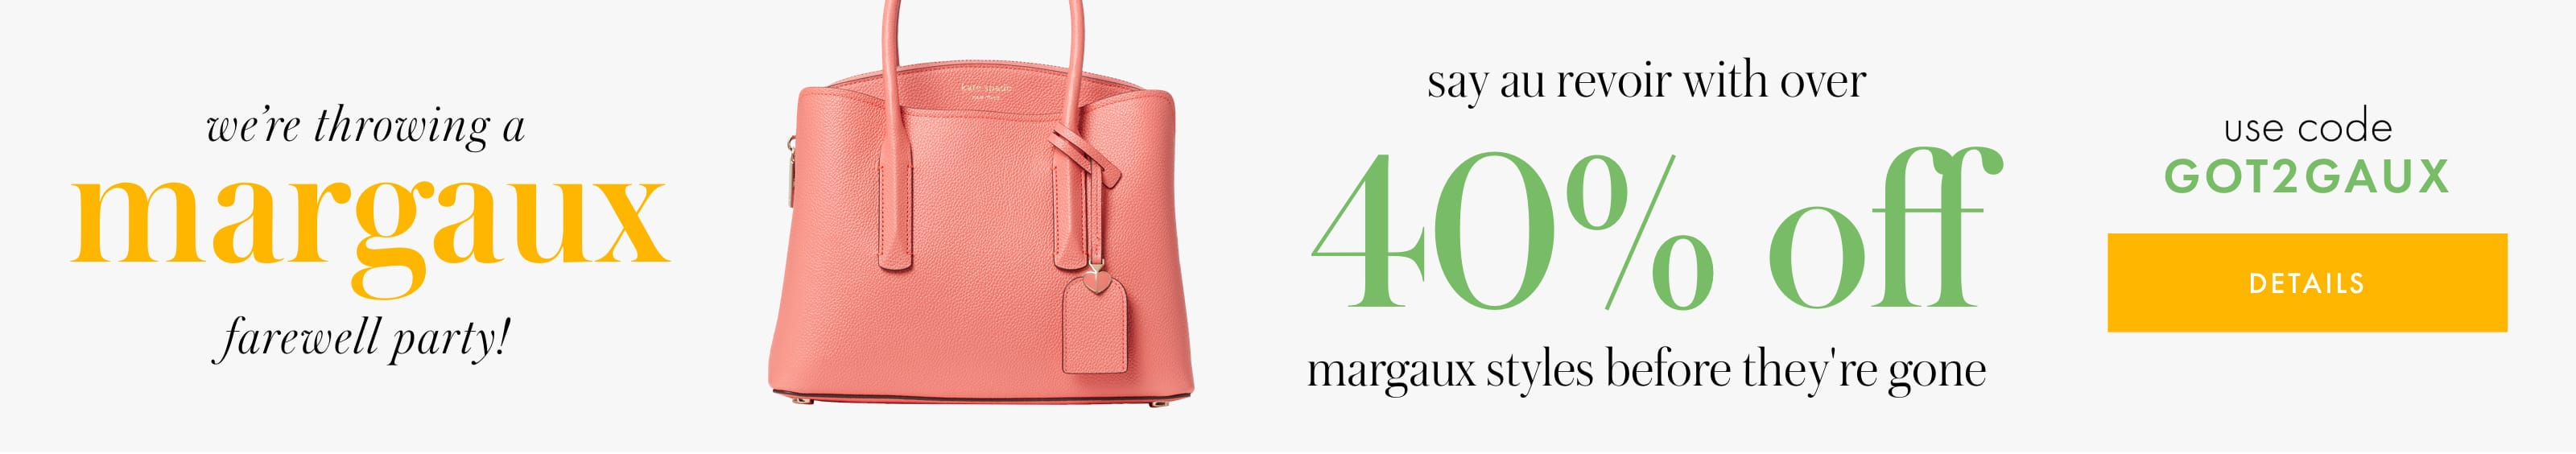 we're throwing a margaux farewell party! say au revoir with 25% off margaux styles before they're gone. use code GOT2GAUX. details